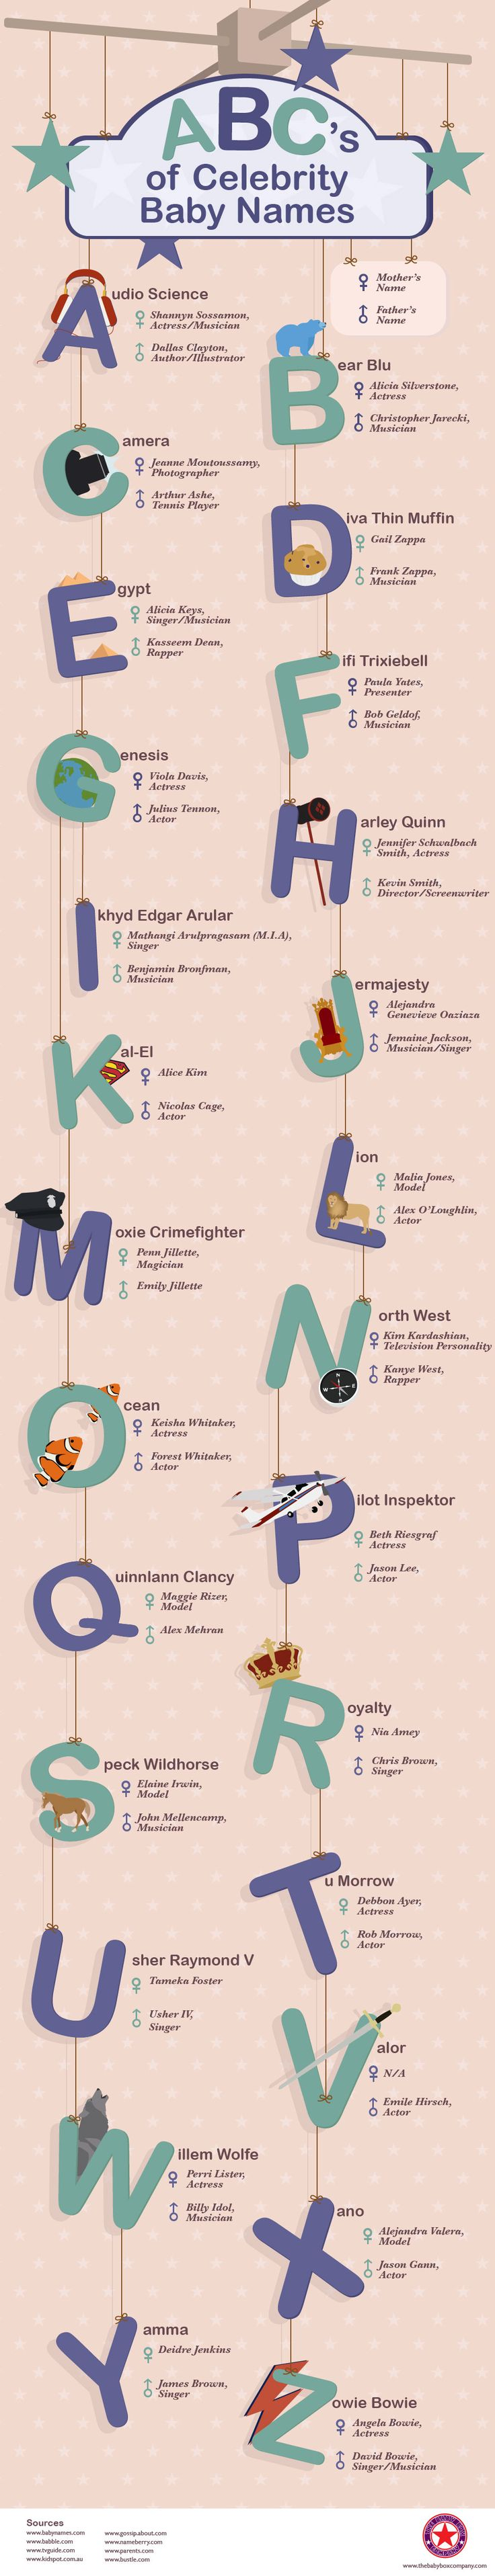 ABC's of Celebrity Baby Names #infographic #Celebrities #Names #BabyNames #CelebritiesBabyNames